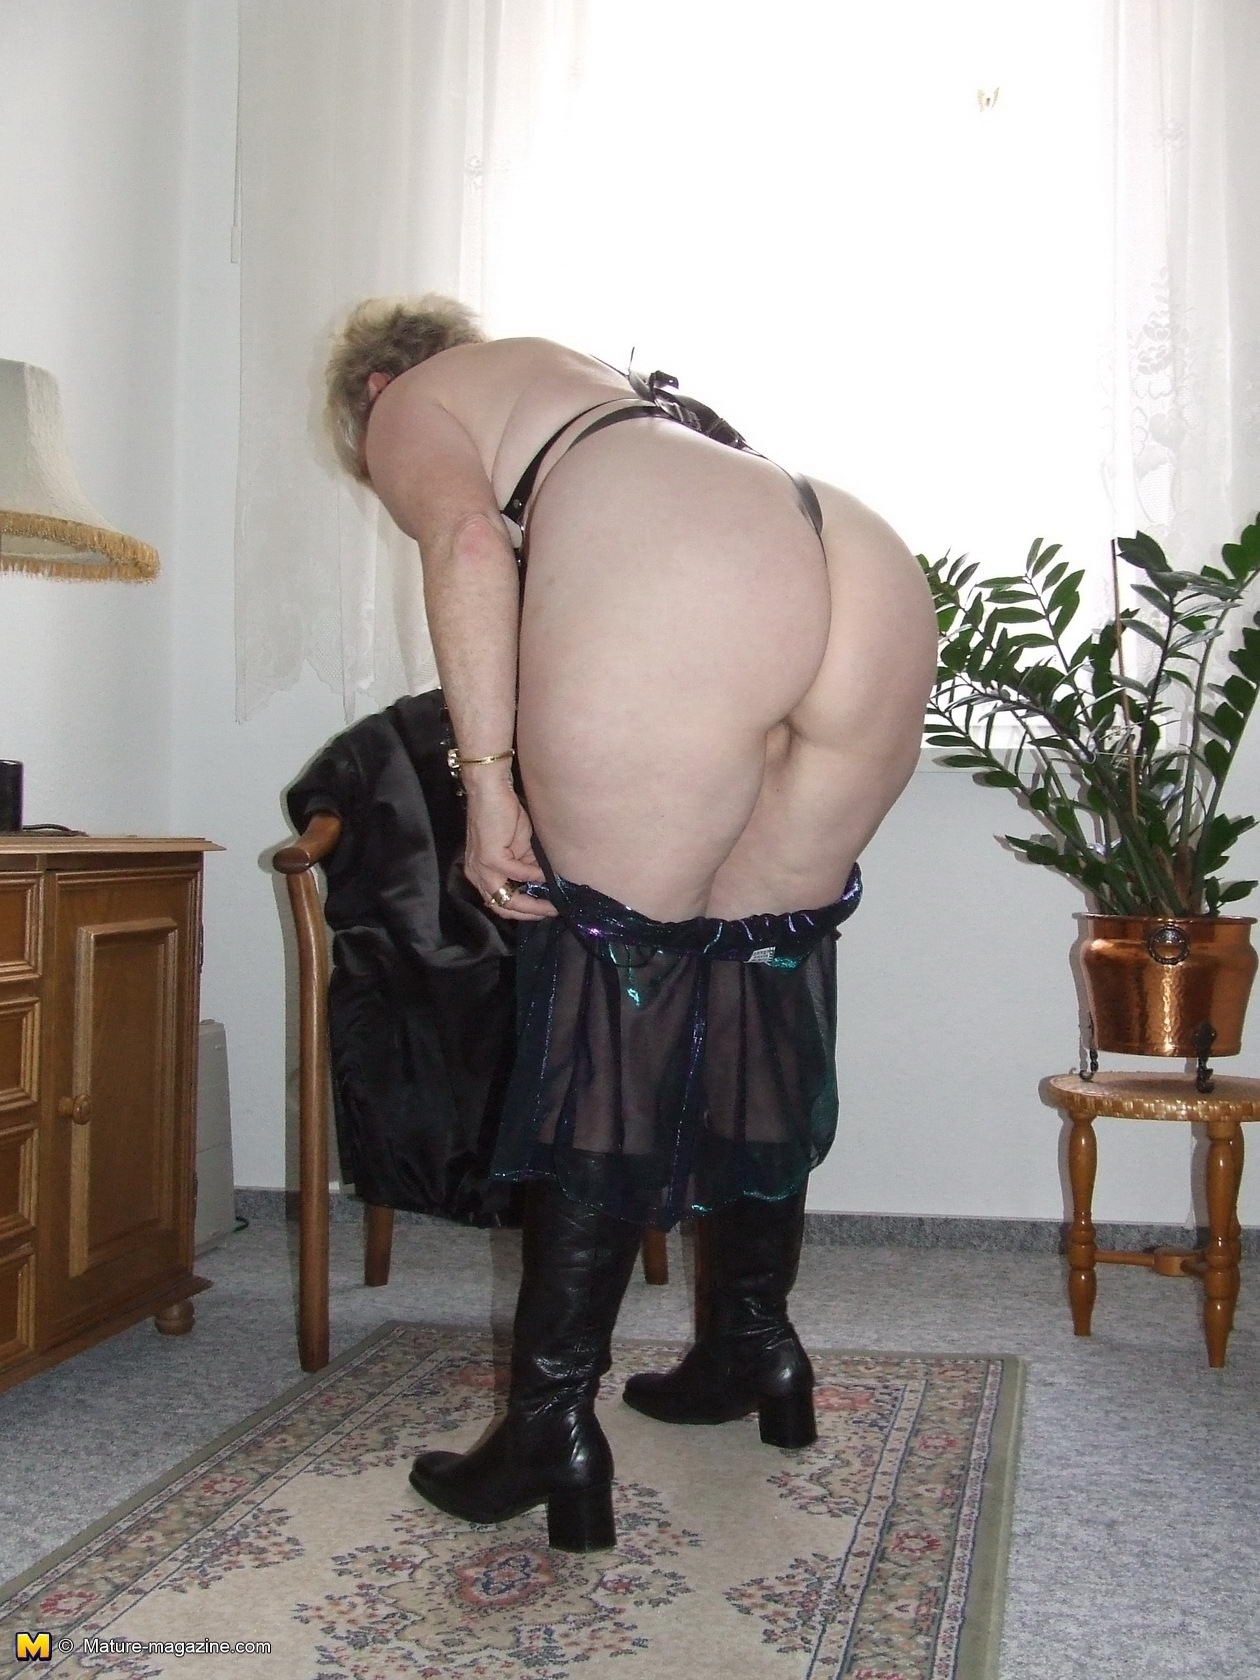 Sexy granny high heels Amateur webcam father and